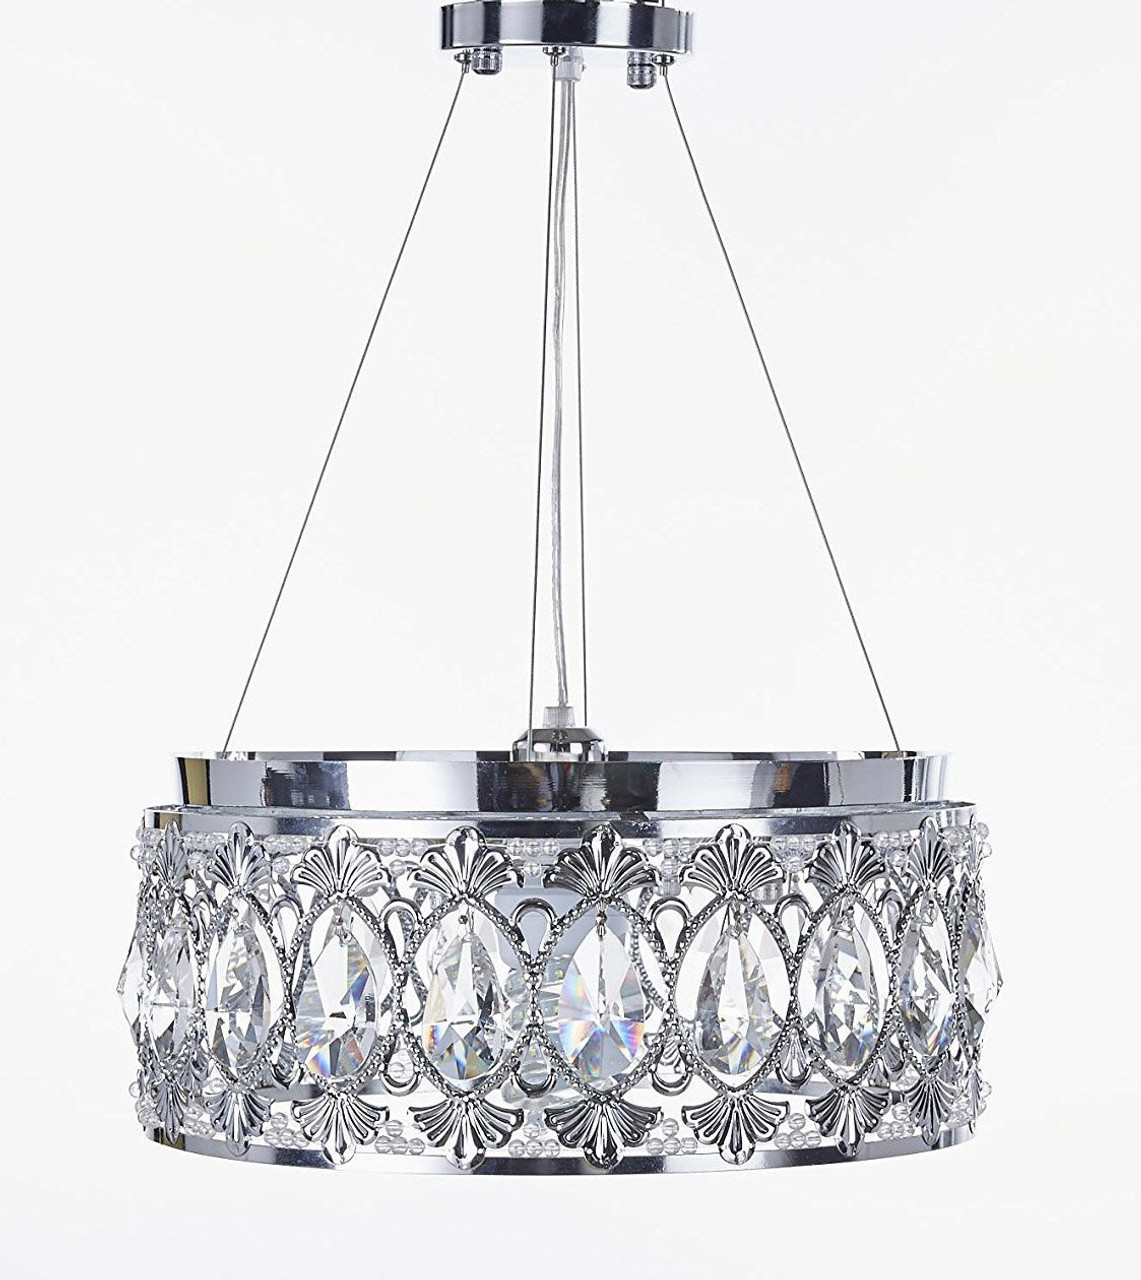 new pendant chandelier light crystal lxledlight led dhgate from modern girls ceiling product lighting room for lamp